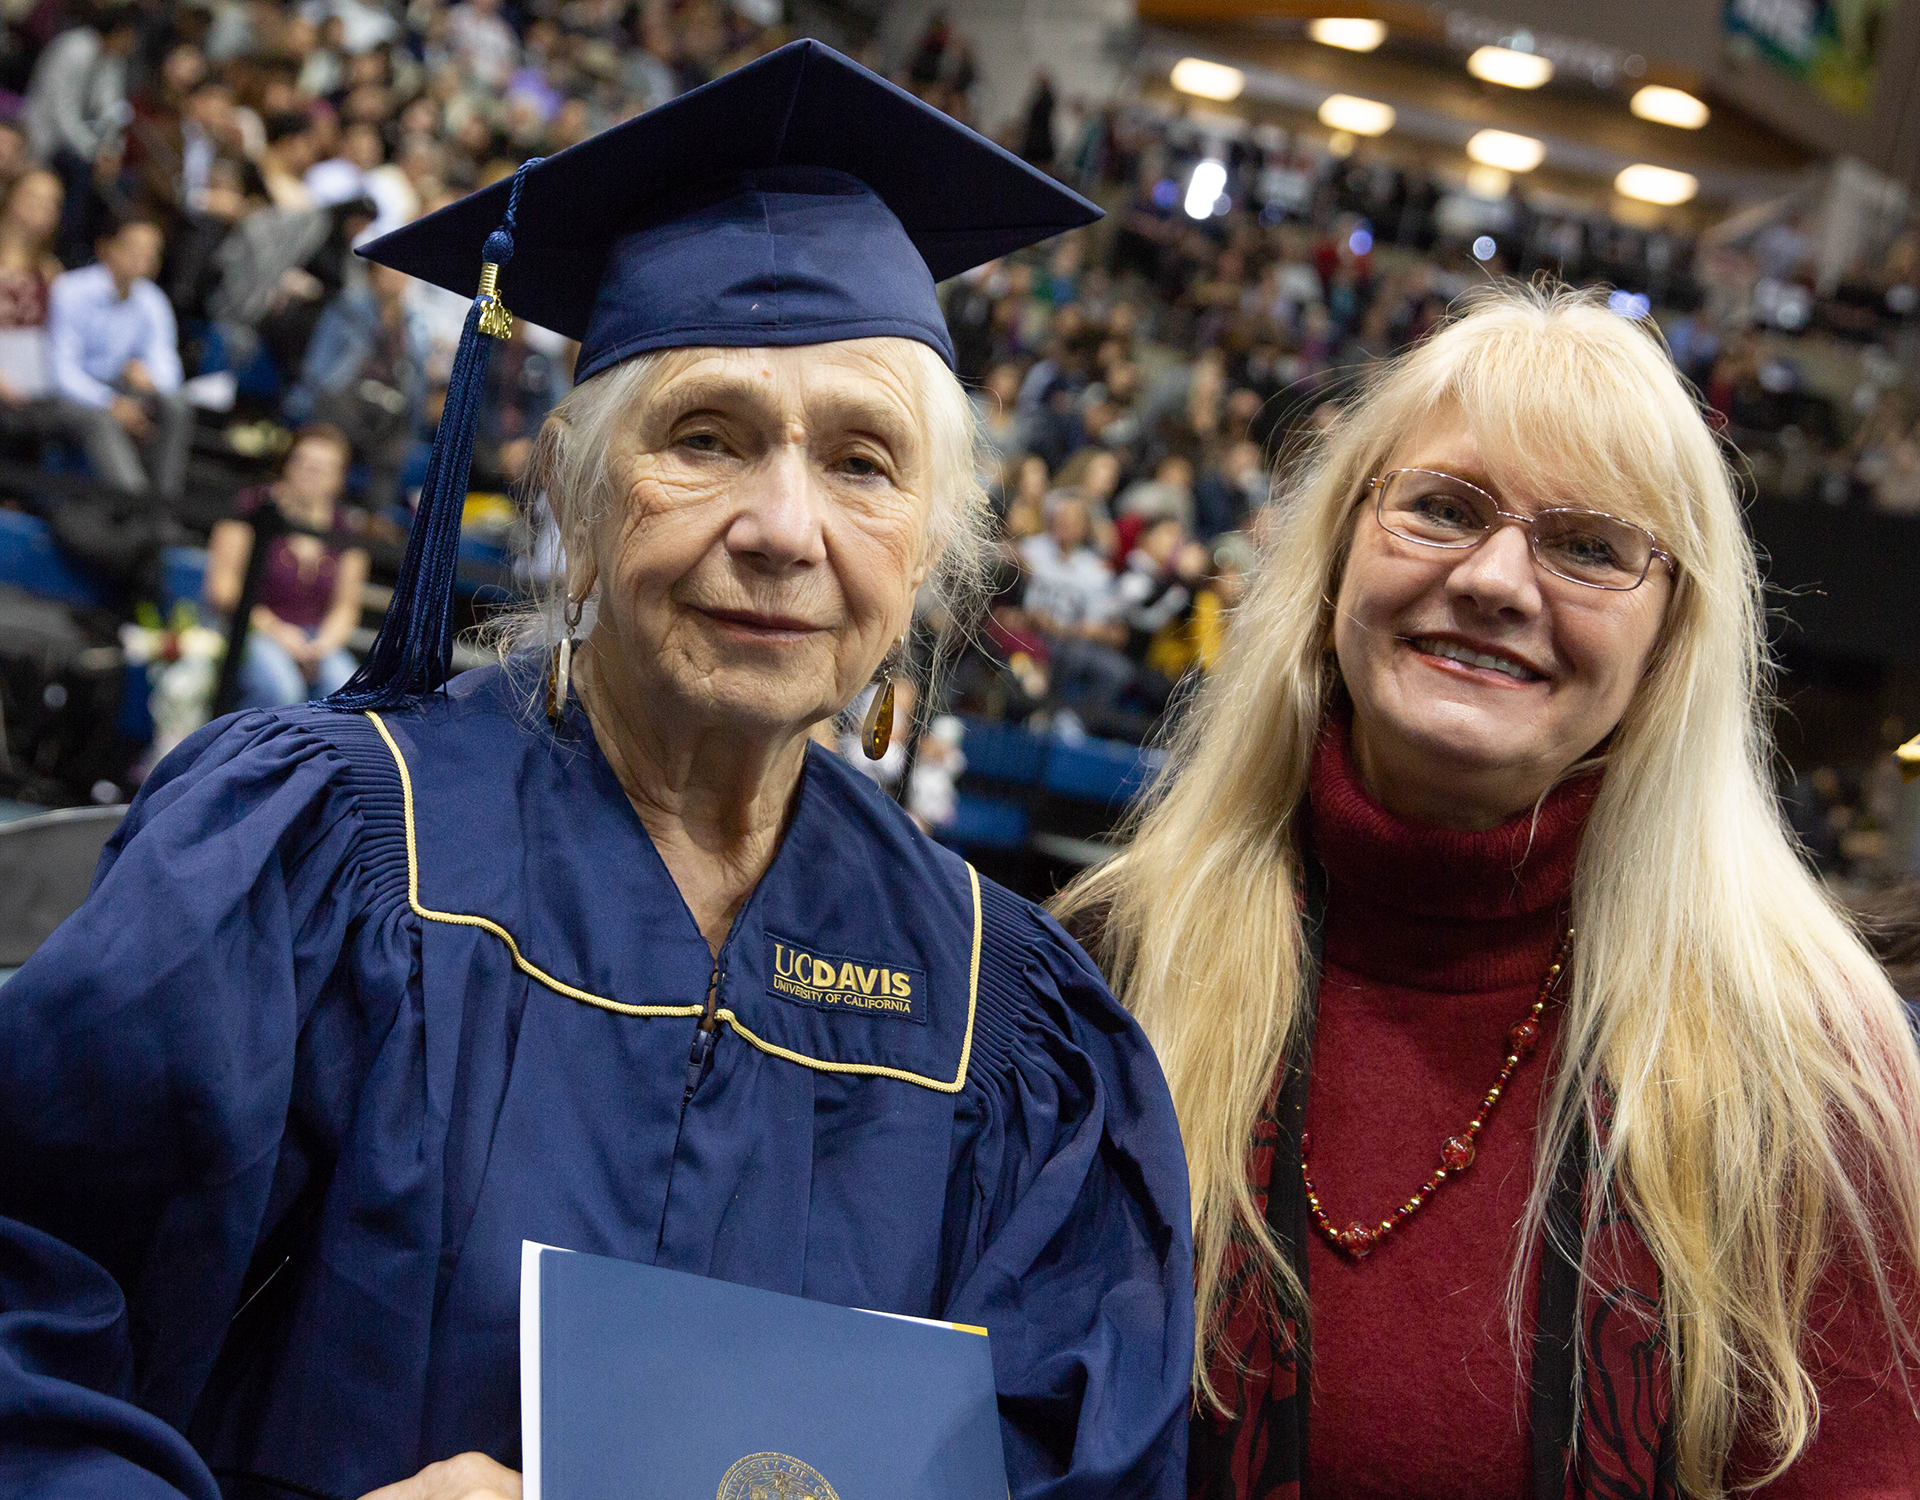 Marianna Daniel in cap and gown with her daughter at UC Davis commencement